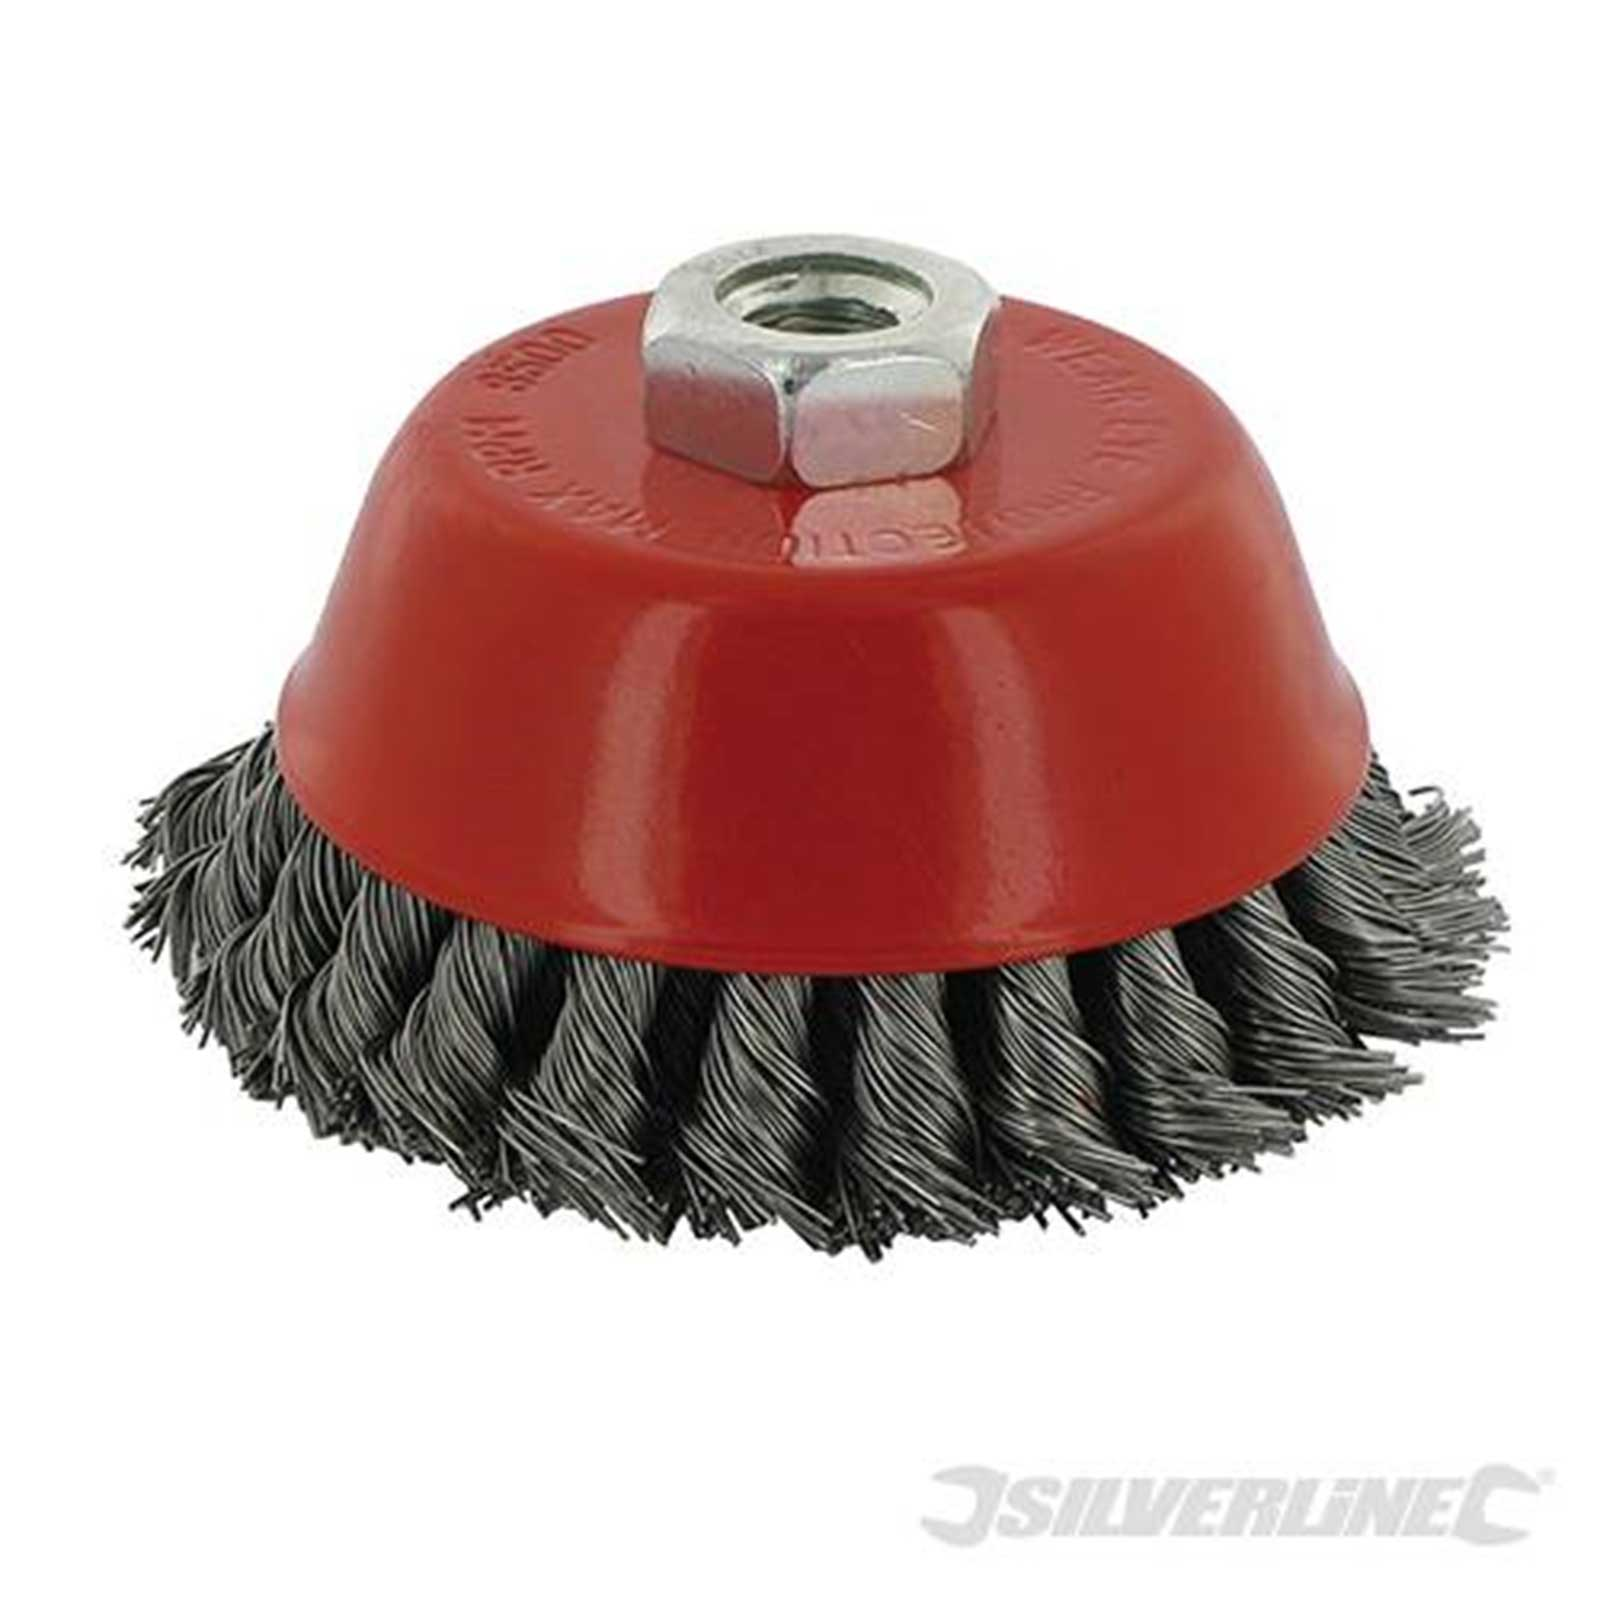 TWIST KNOT BOWL CUP BRUSH WHEELS FOR GRINDER OR DRILL - Rustbuster